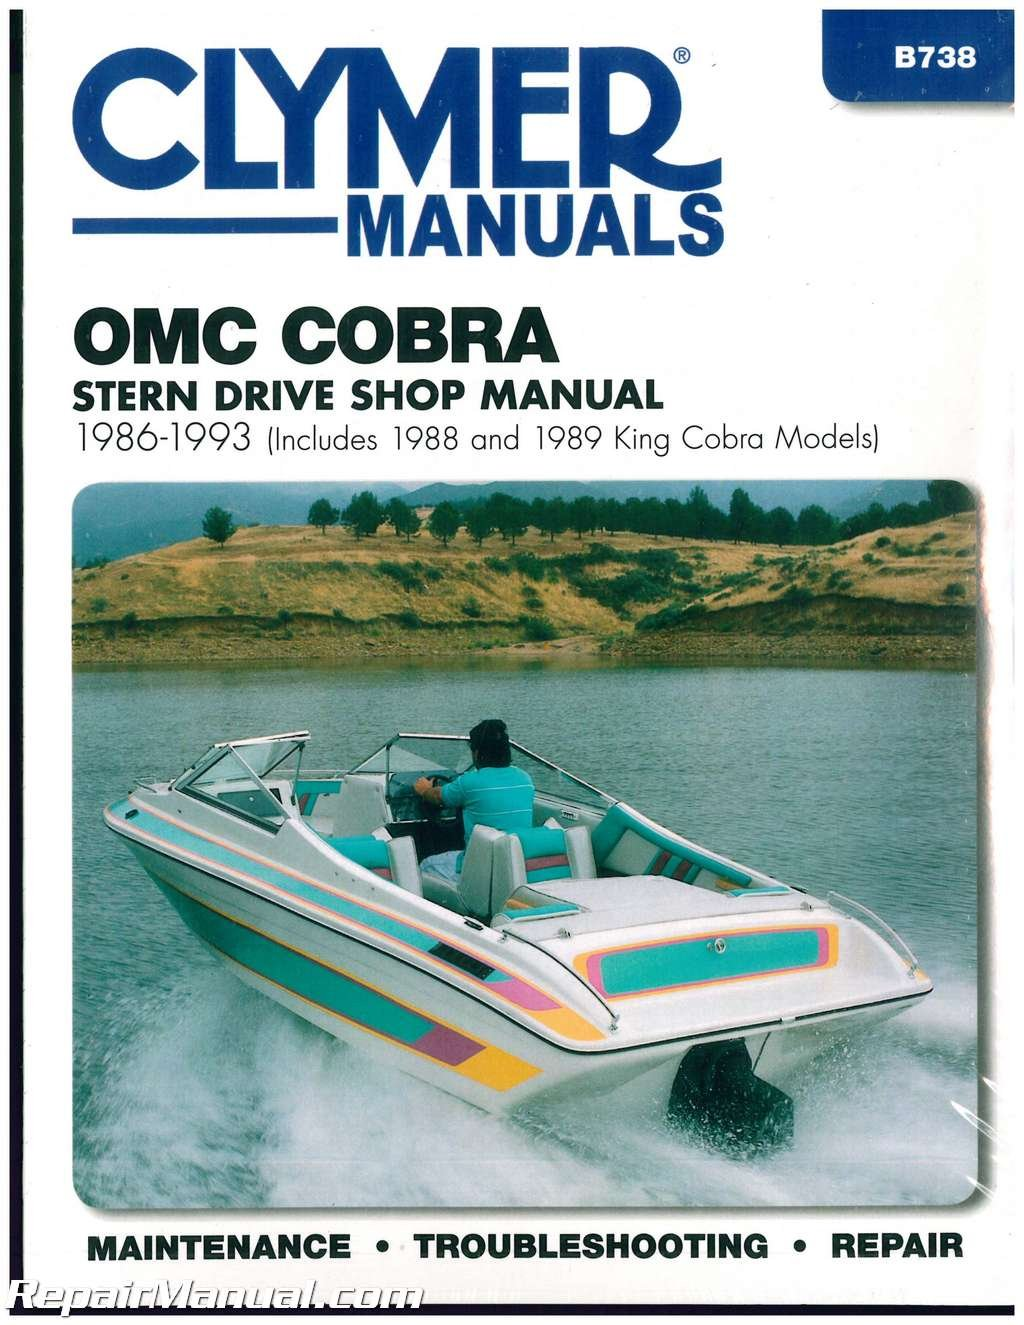 B738 Clymer Omc Cobra 1986 1993 Stern Drive Boat Engine Repair 1989 Ignition Wiring Diagram Manual Manufacturer Books